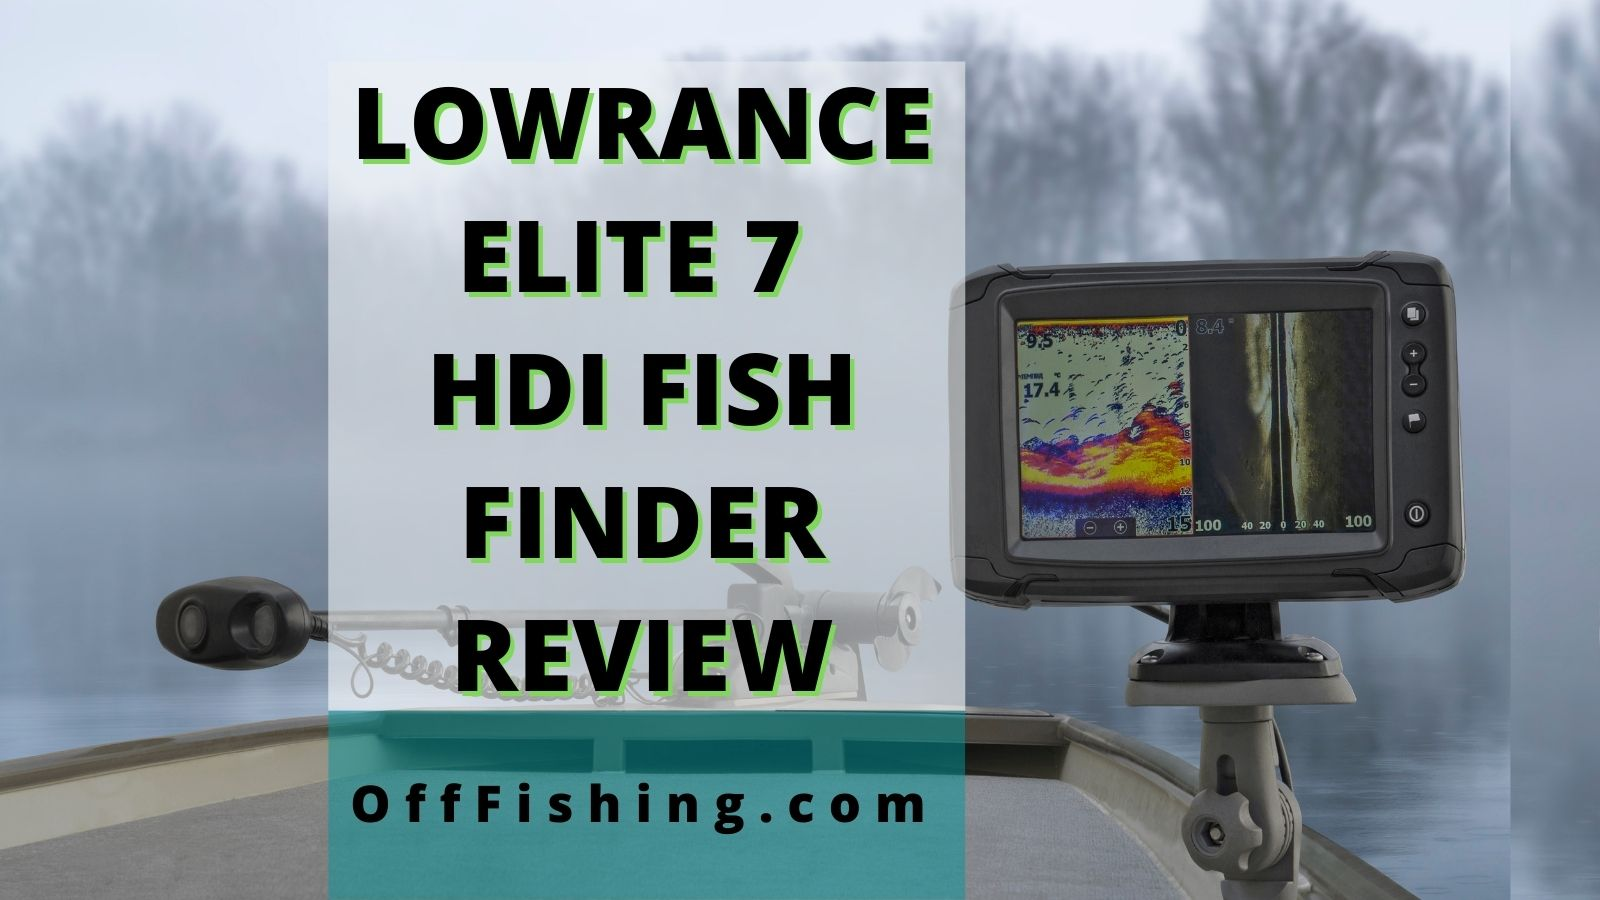 HDI Fish Finder Lowrance Elite 7 Review Off Fishing